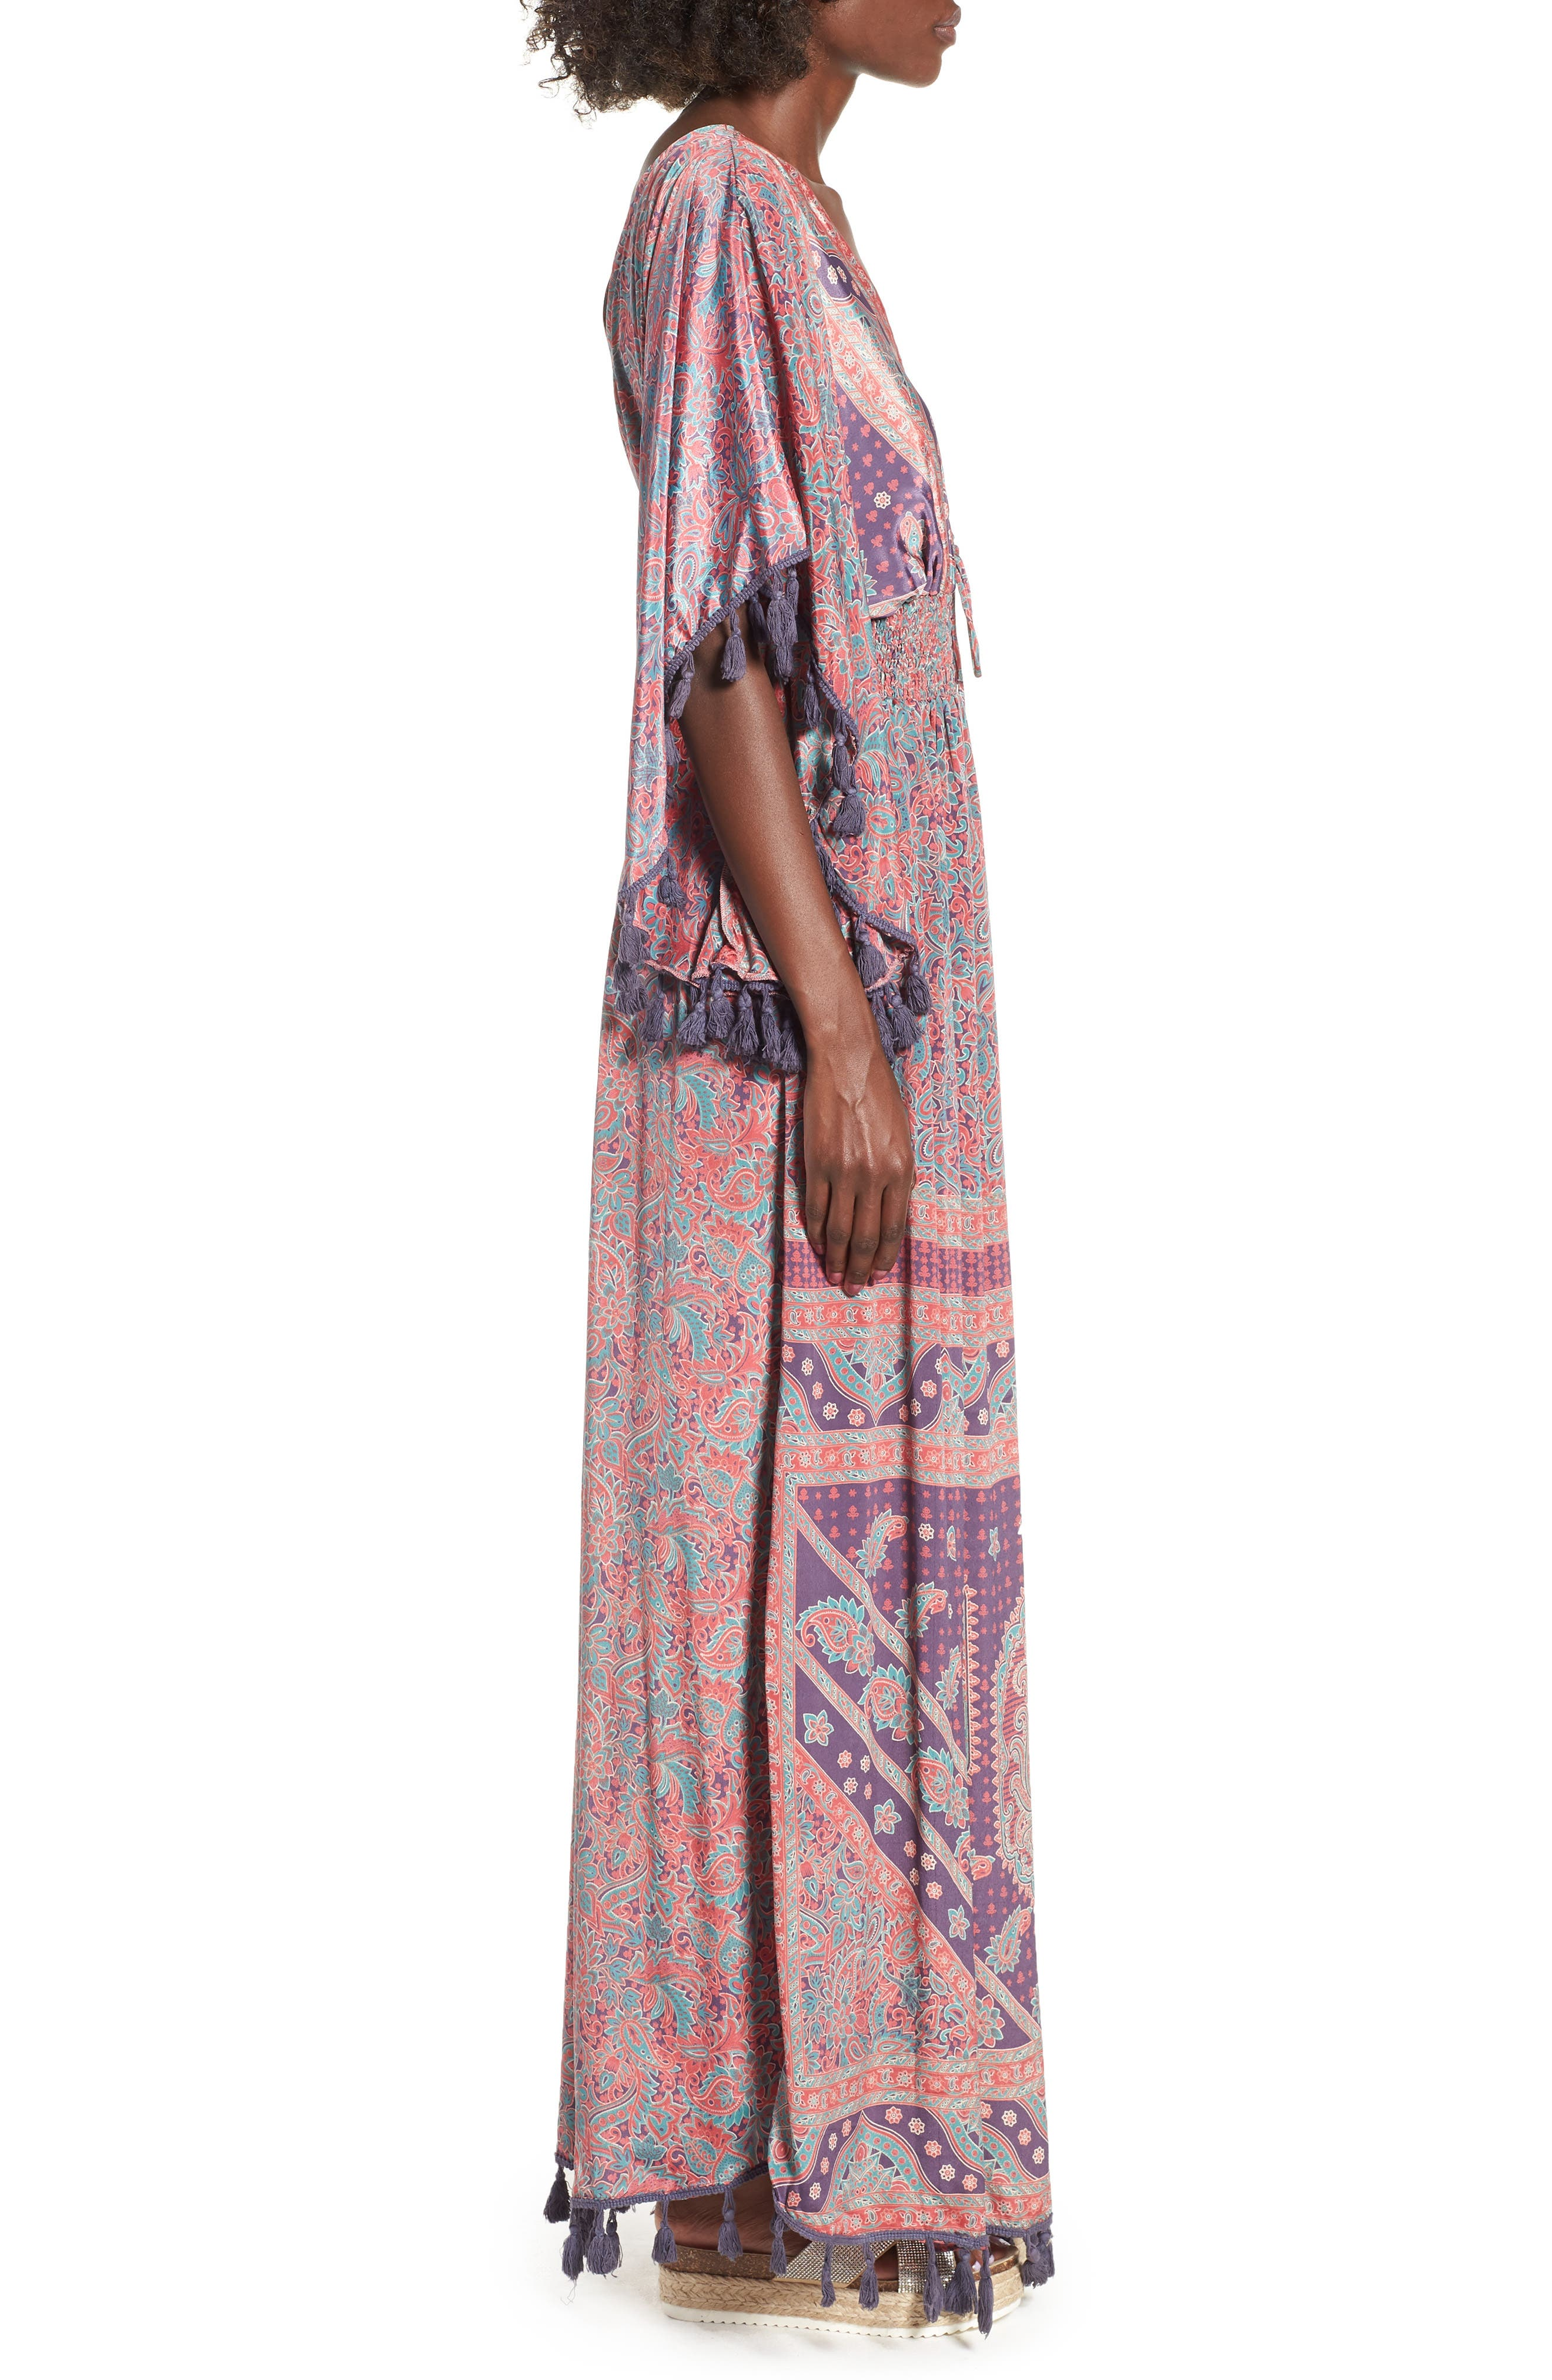 Electric Love Maxi Dress,                             Alternate thumbnail 6, color,                             Multi